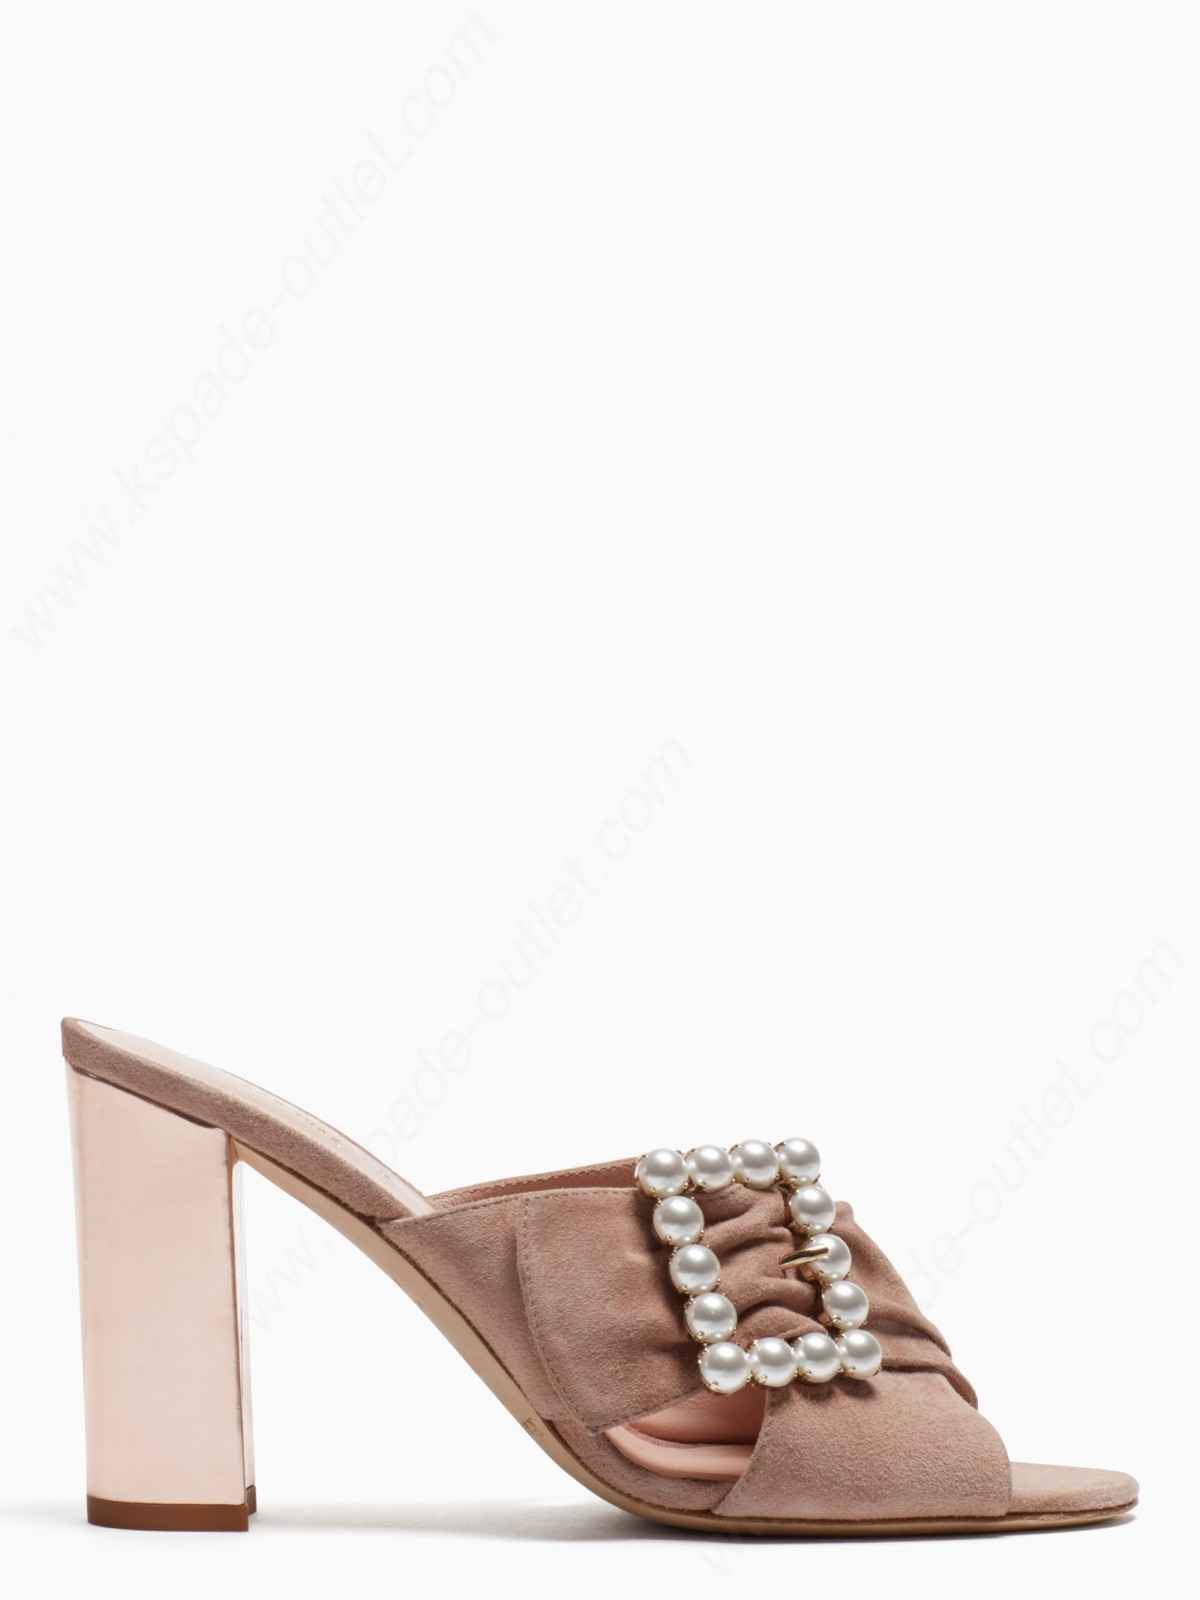 Kate Spade Women Shoe Iman Sandals - -1